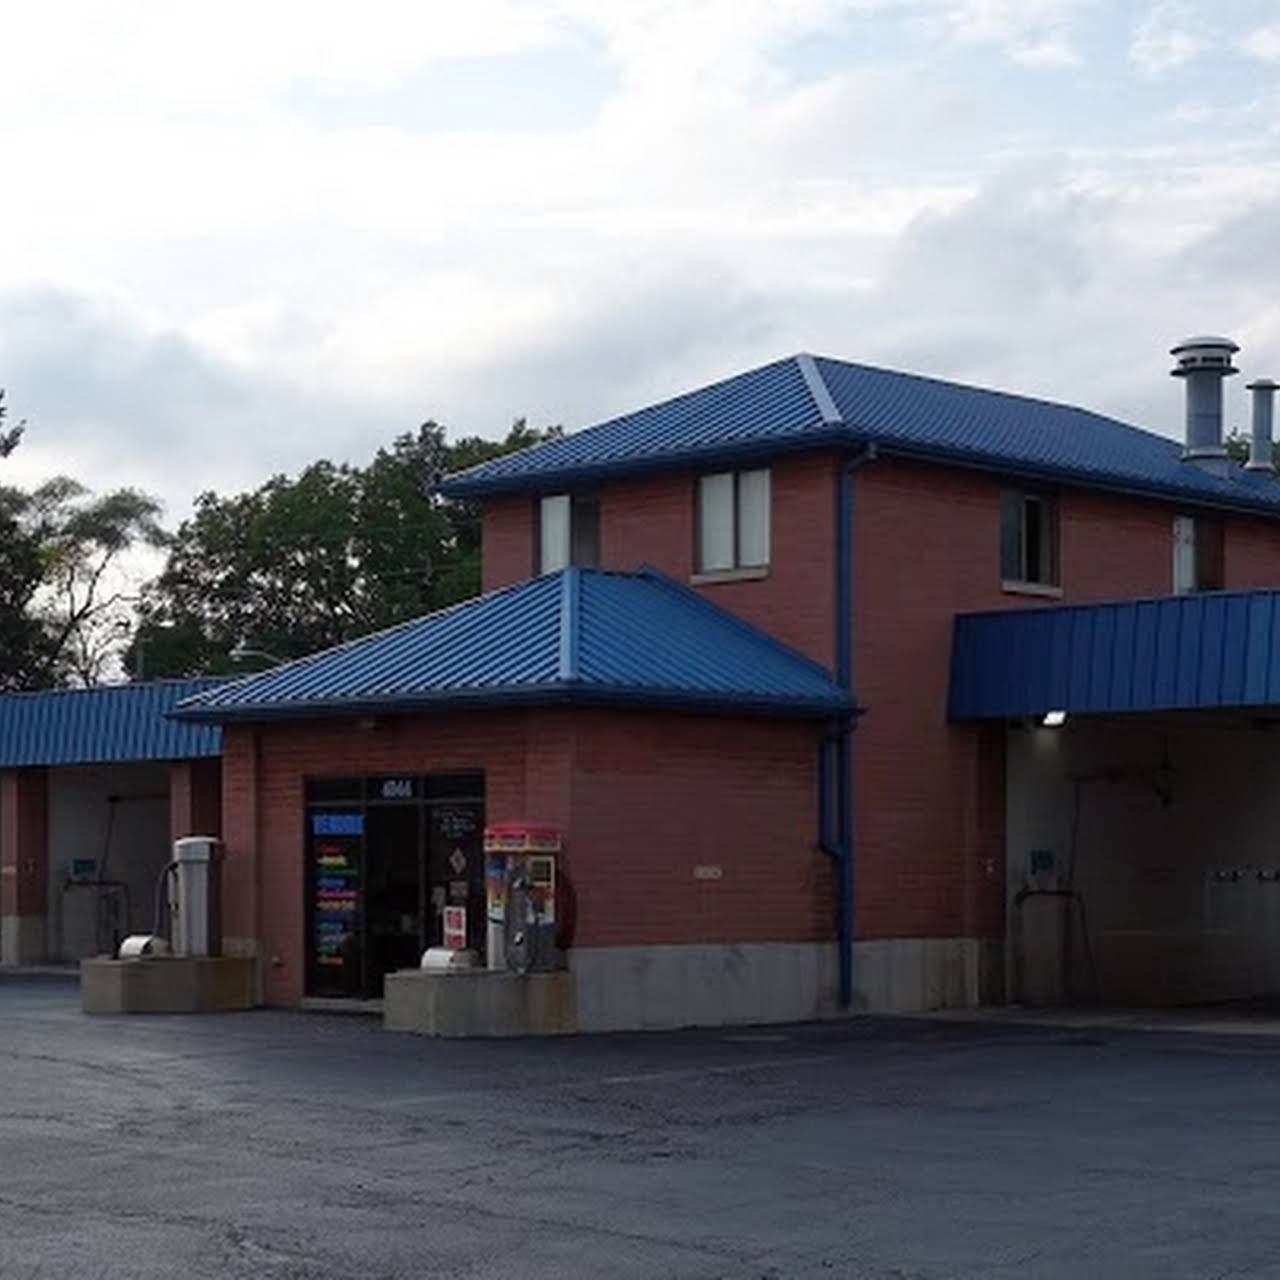 Touch free car wash self service car wash in hillside illinois touch free car wash automat solutioingenieria Images